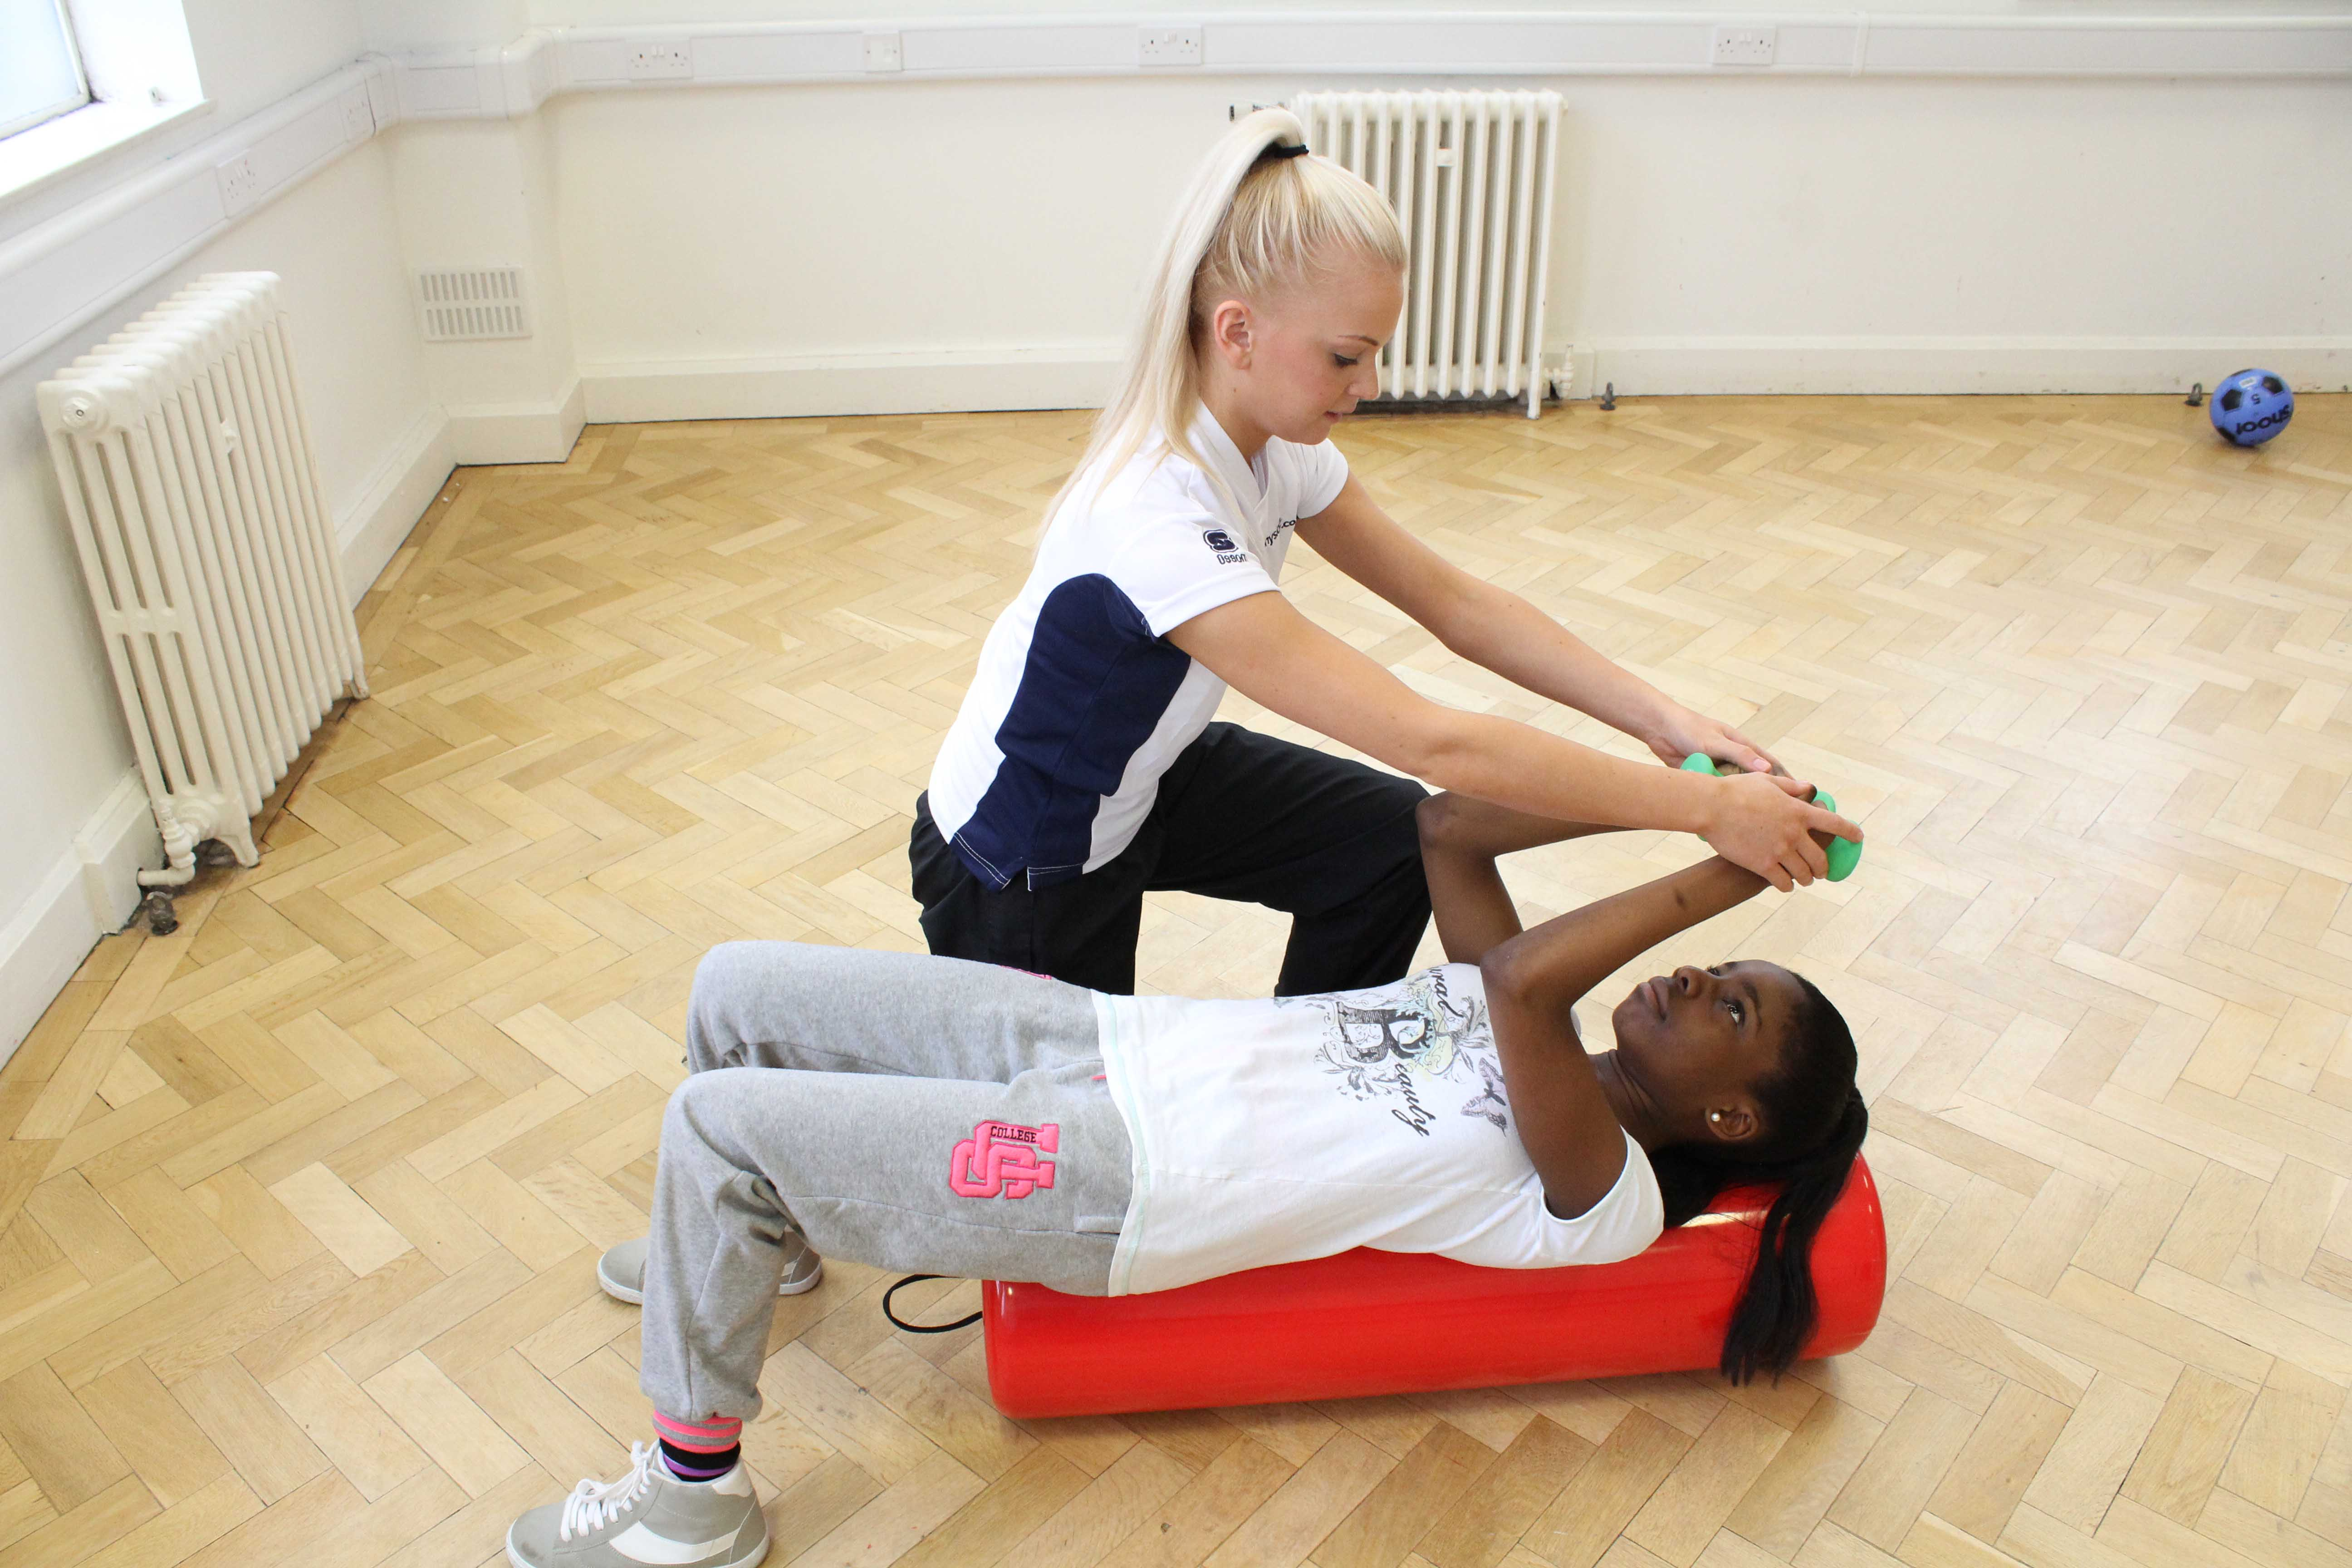 Gross motor skills, proprioception and muscle tone exercises assisted by a paediatric physiotherapist